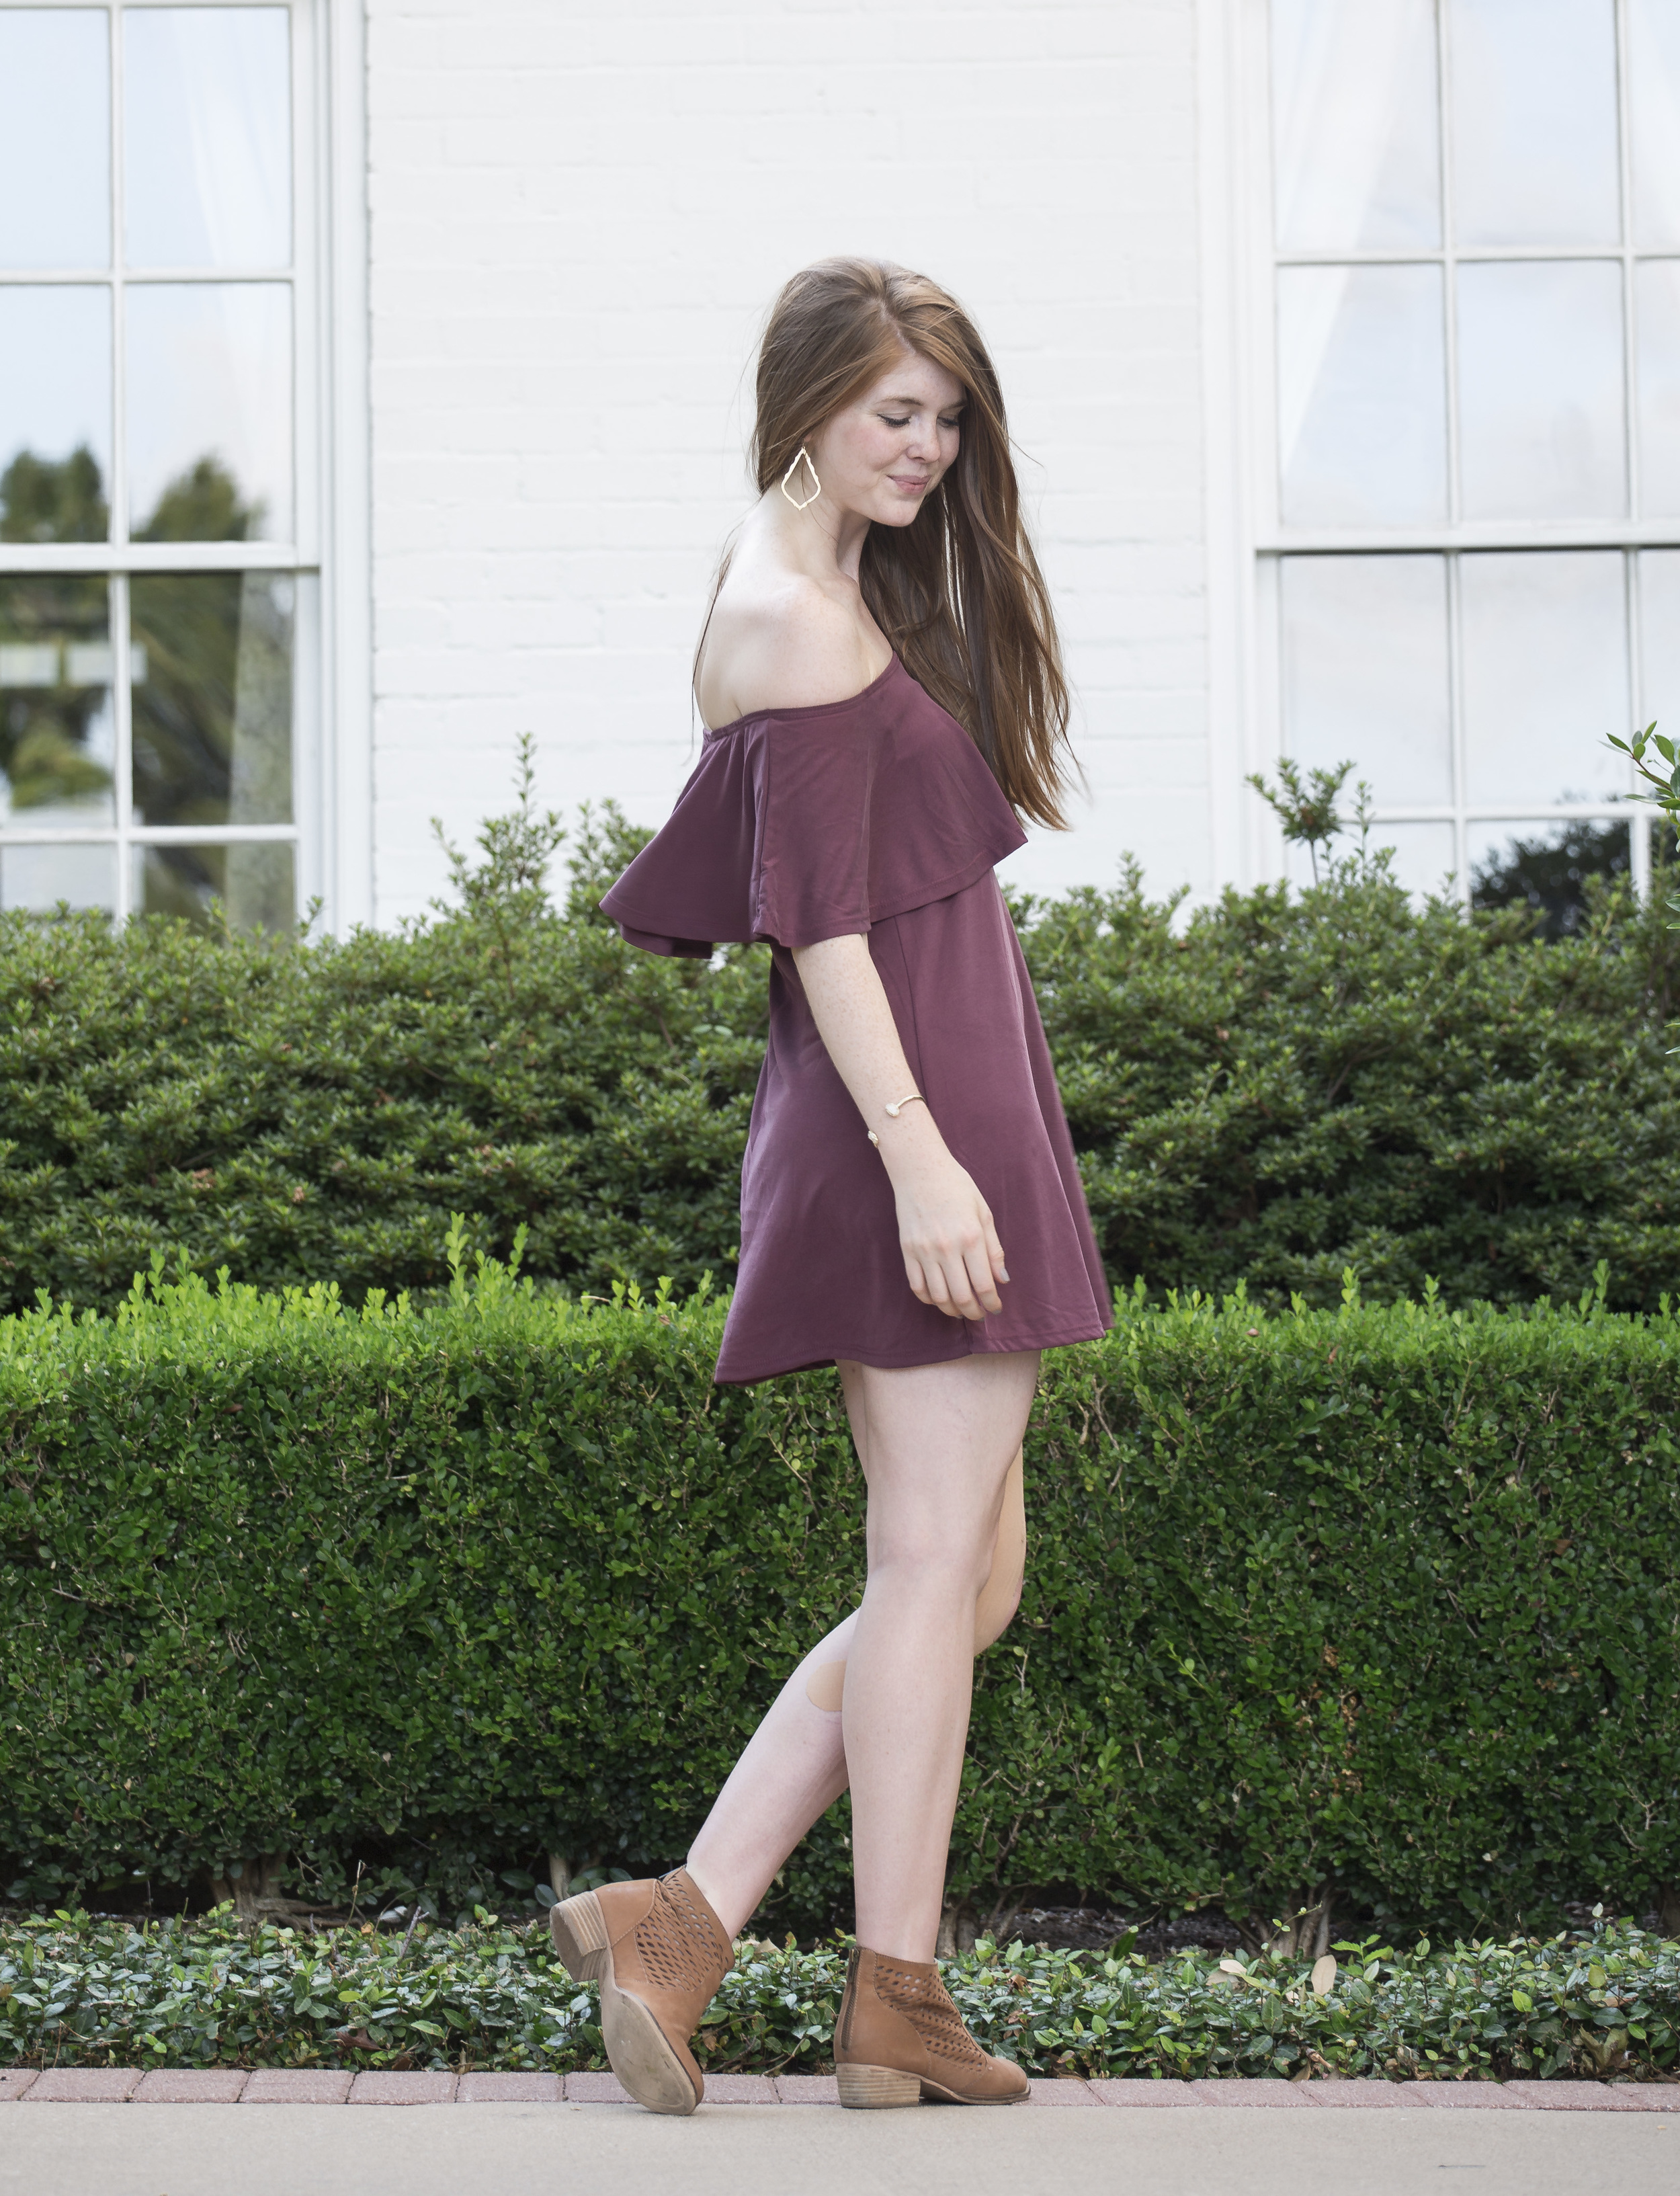 bp maroon off the shoulder cotton dress, seychelles waypoint booties, kendra scott sophee earrings, kendra scott druzy cuff, daniel wellington watch, jomashop, sarah kelly photography, dallas photography, arlington hall at lee park